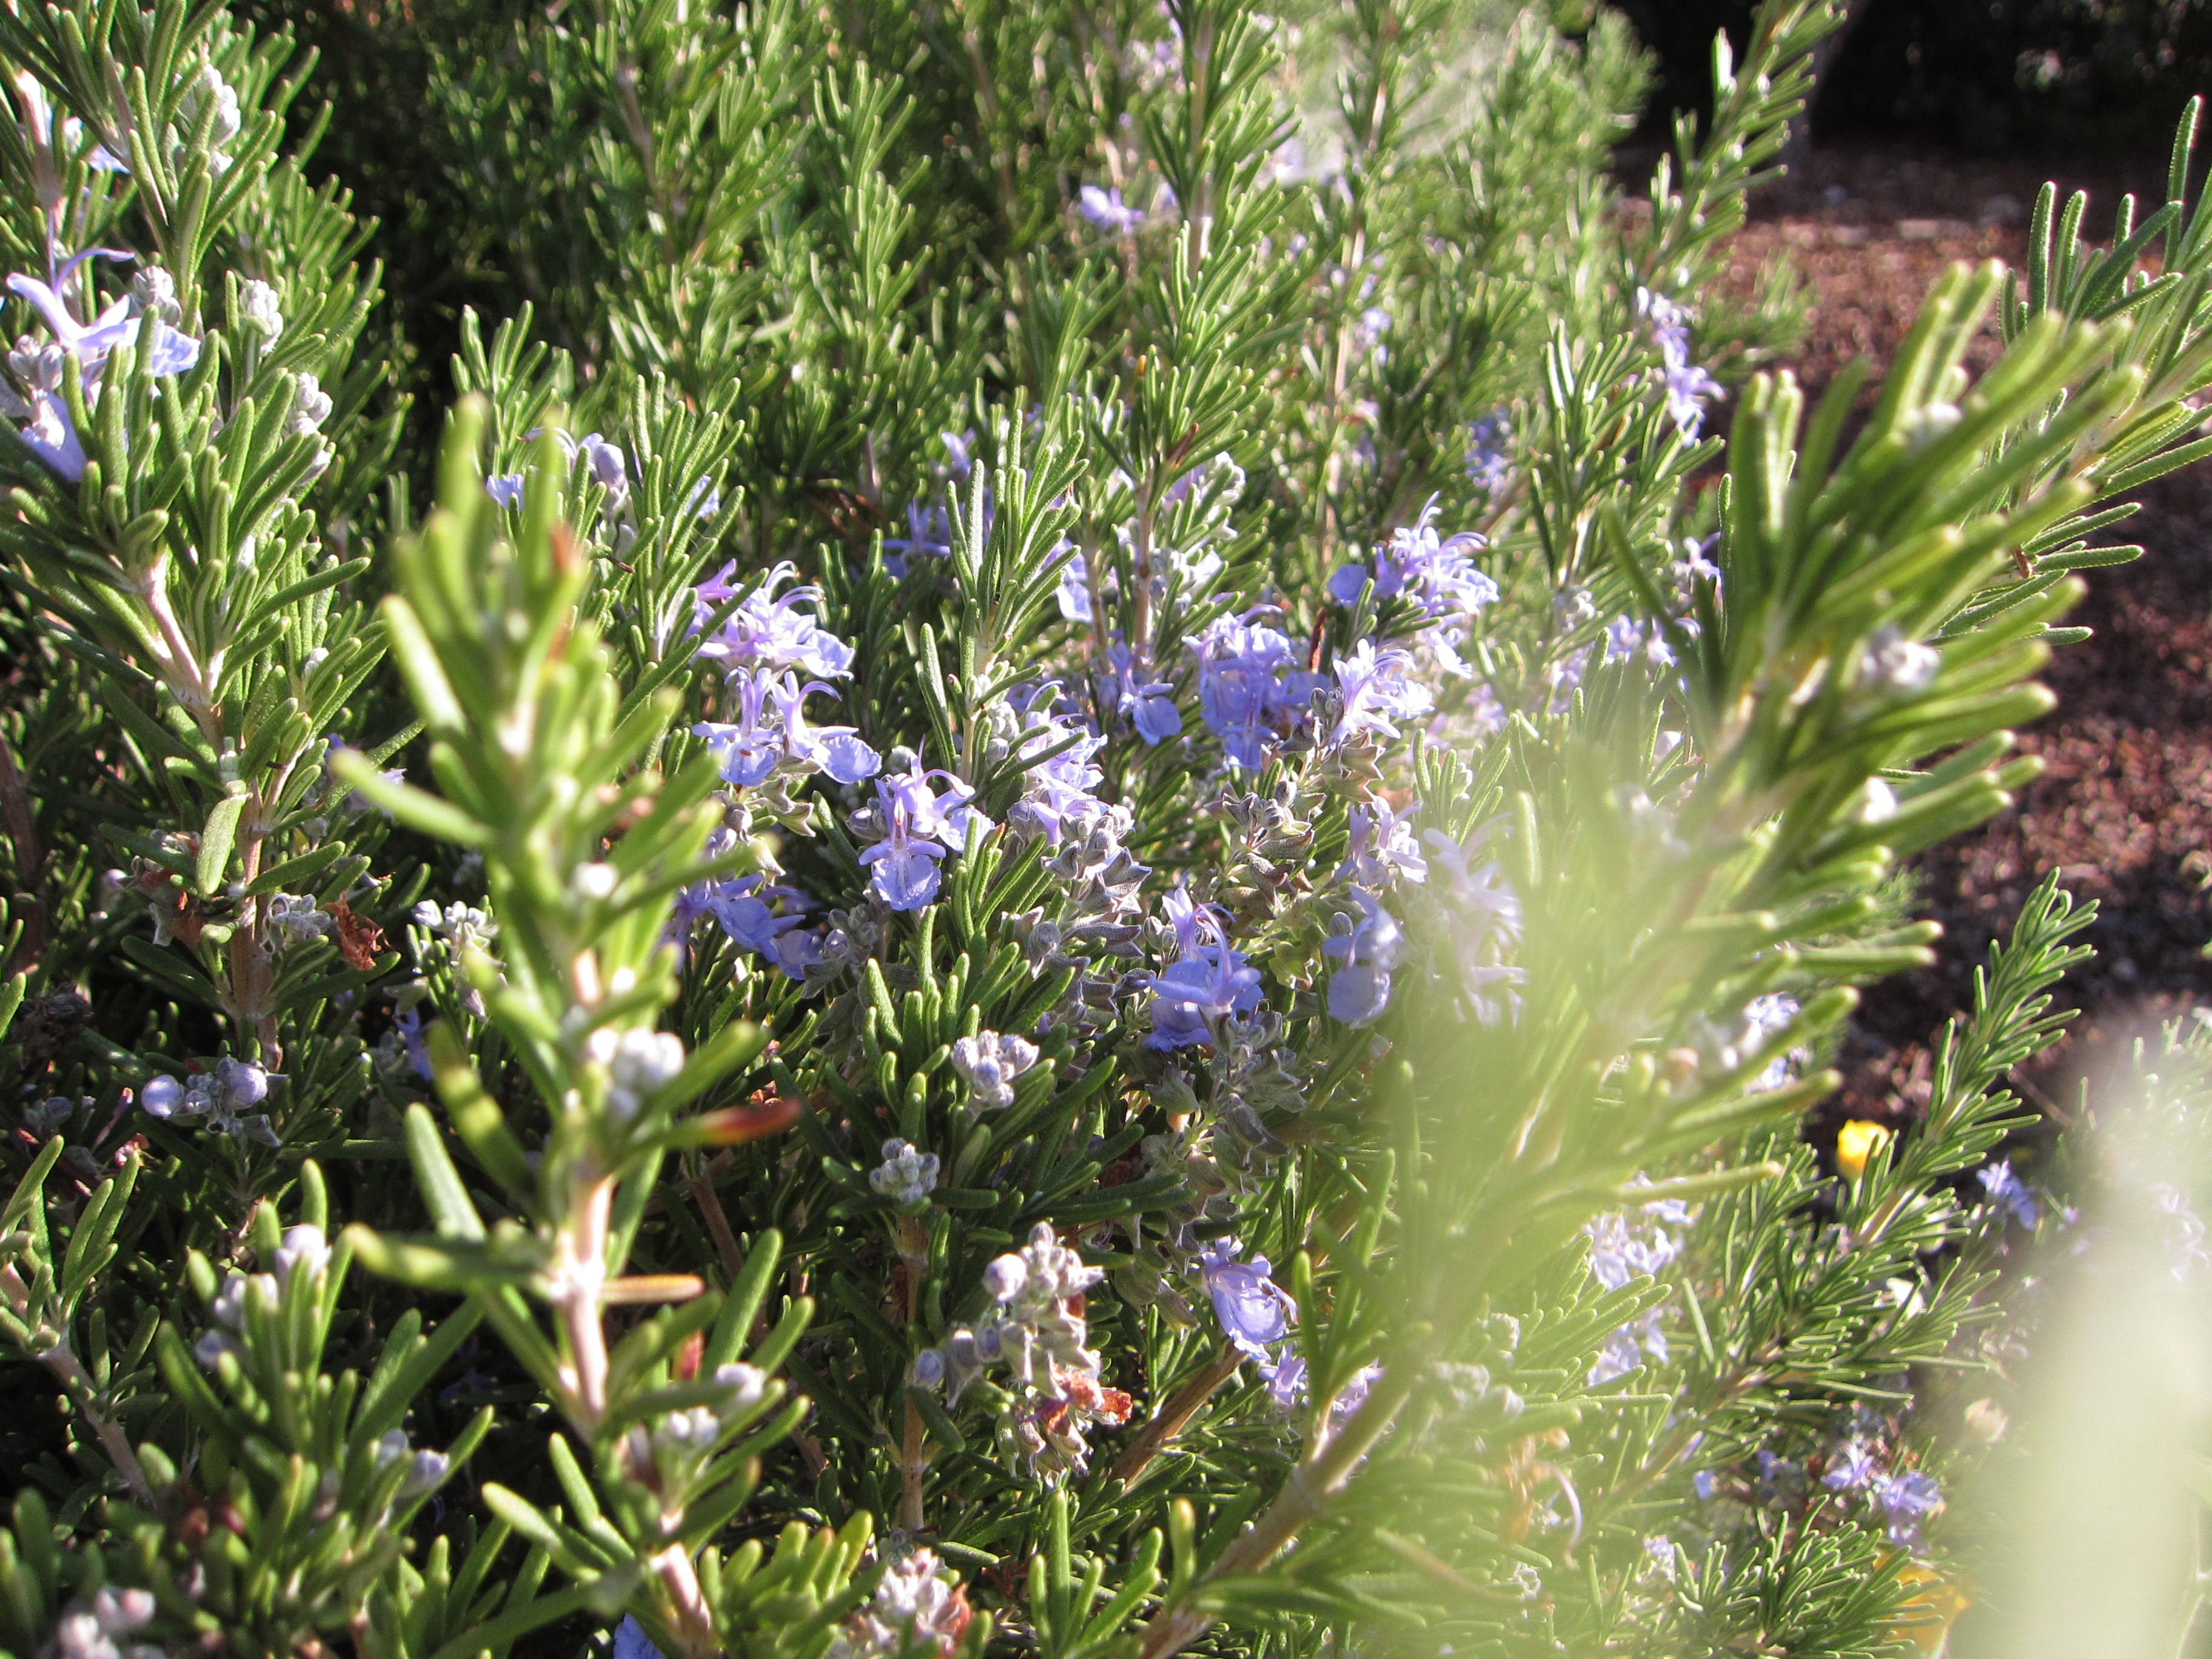 Rosemary is flowering now. We'll prune it back by a third when flowers finishing.